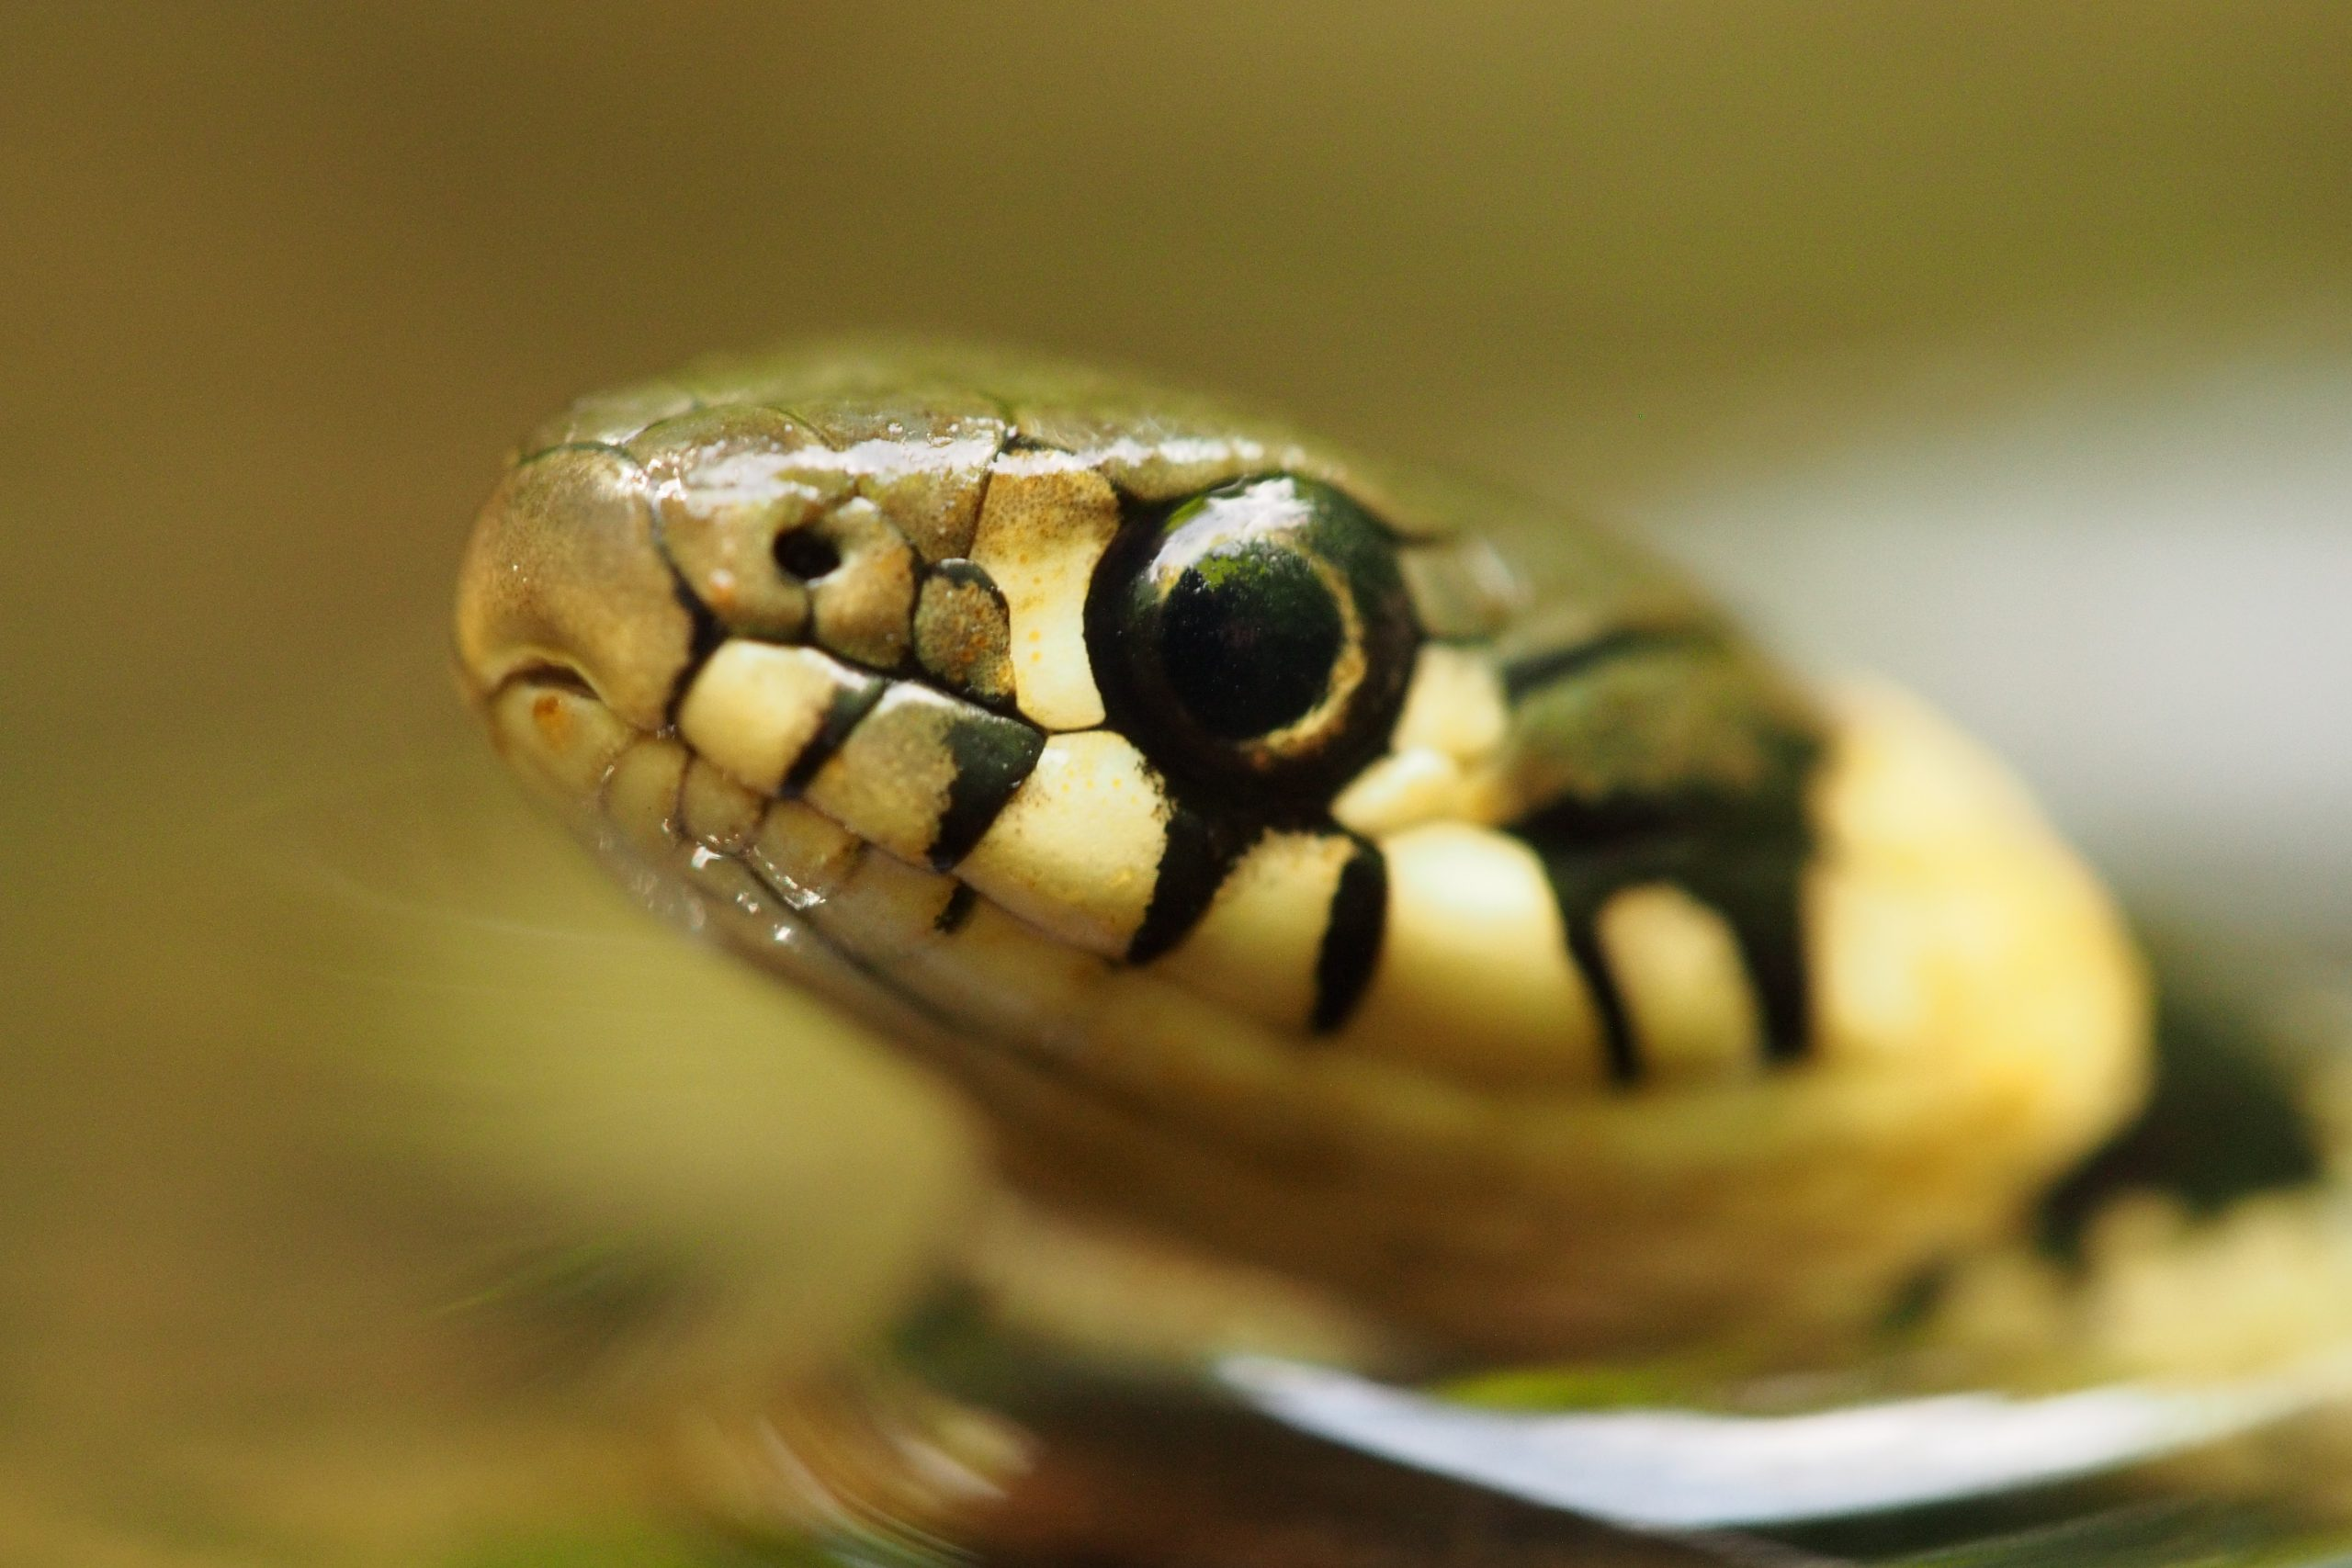 No Links with Cobra.-update Cobra refuses to remove link after requesting its removal